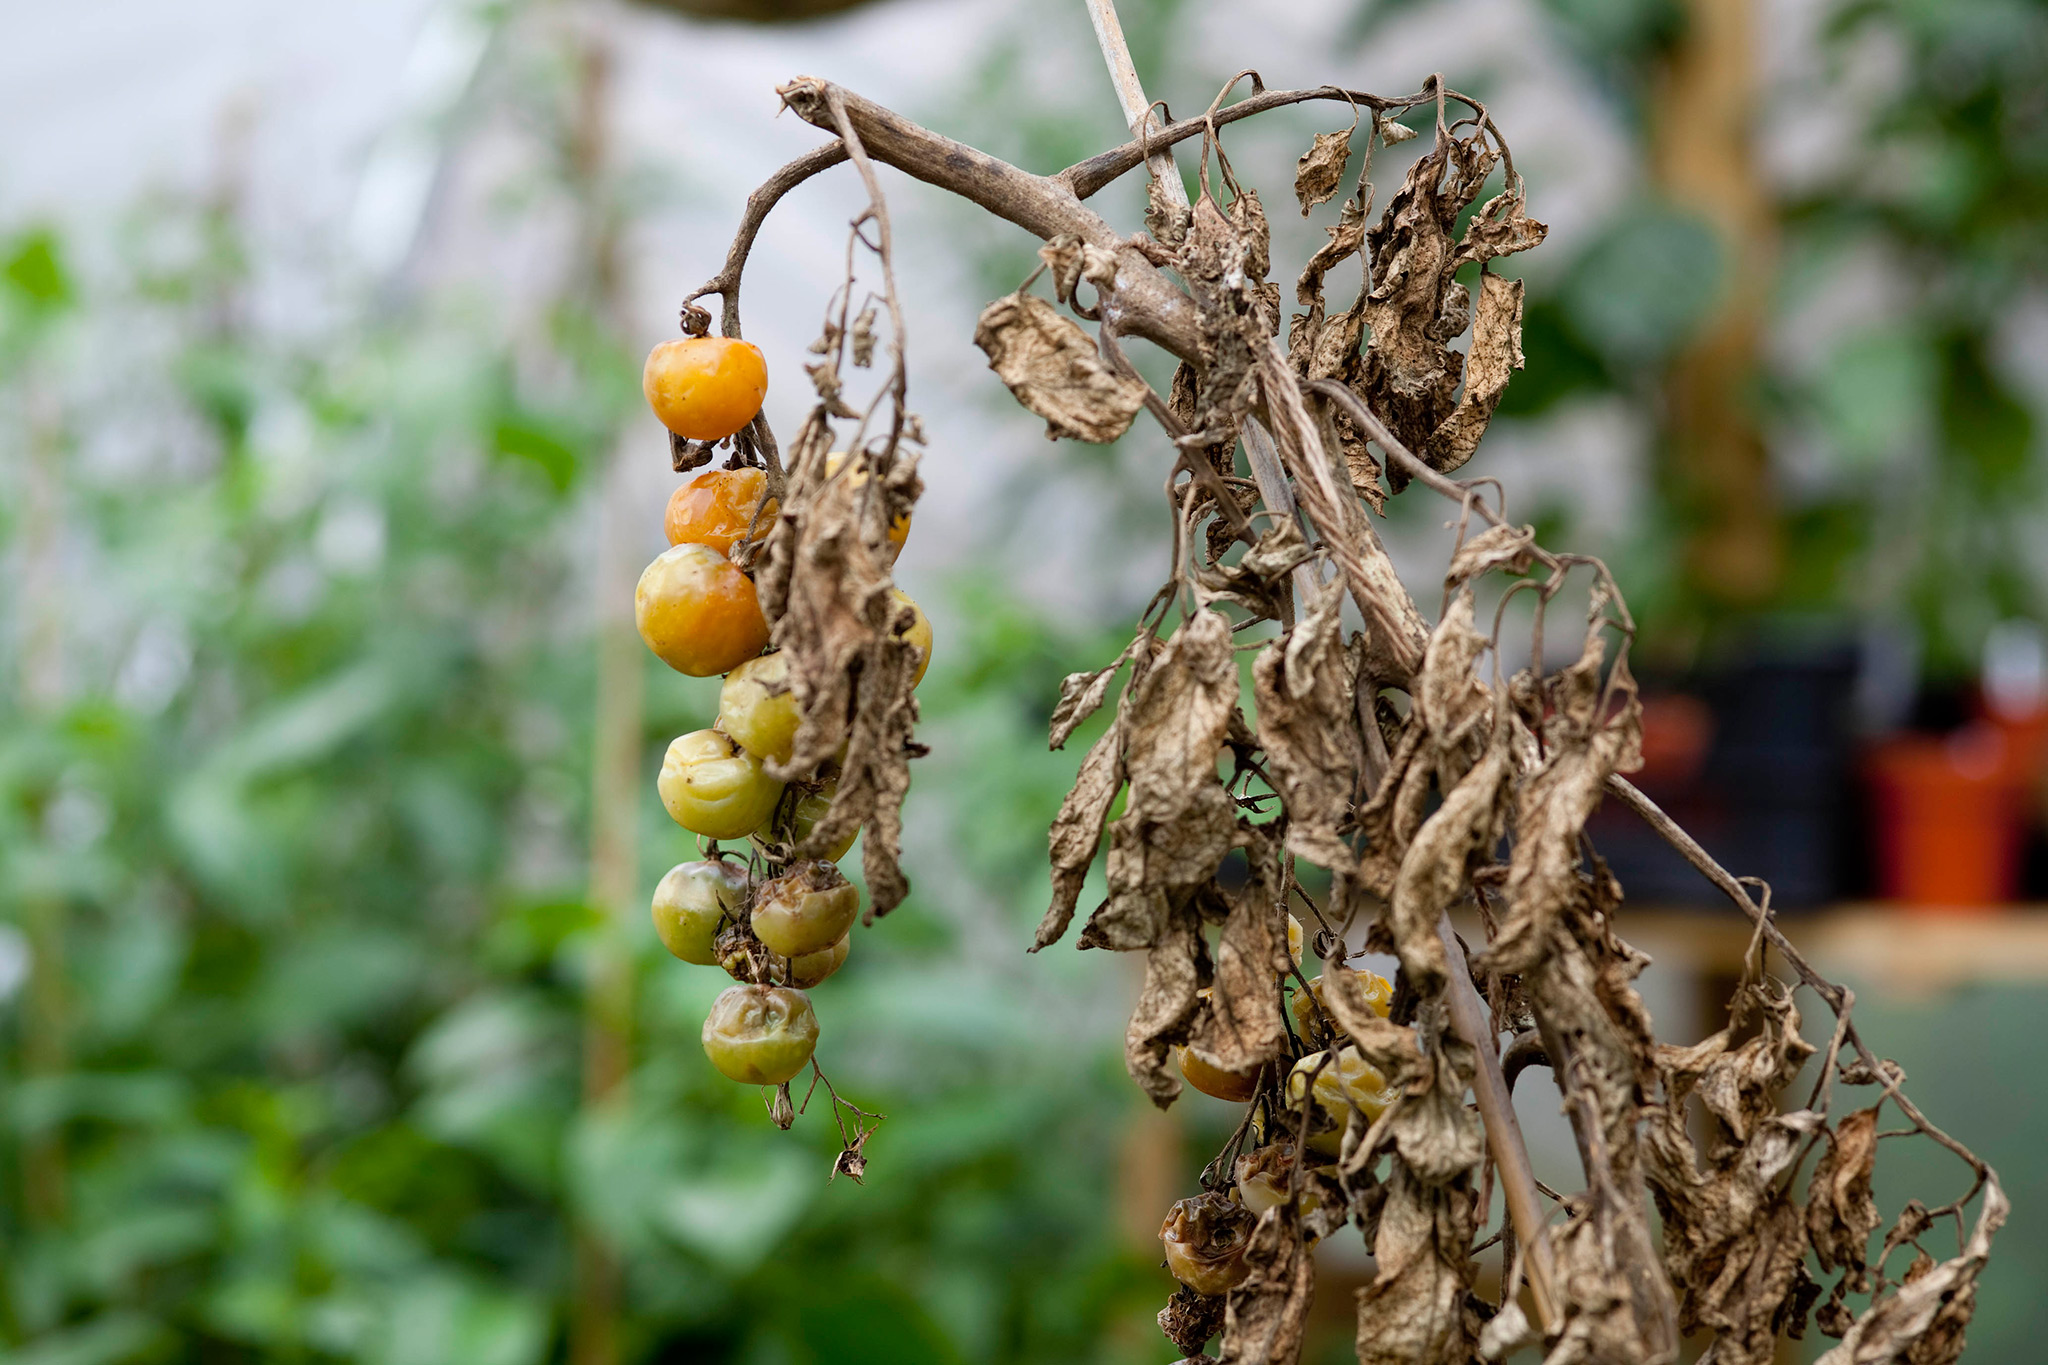 Blighted tomato crop